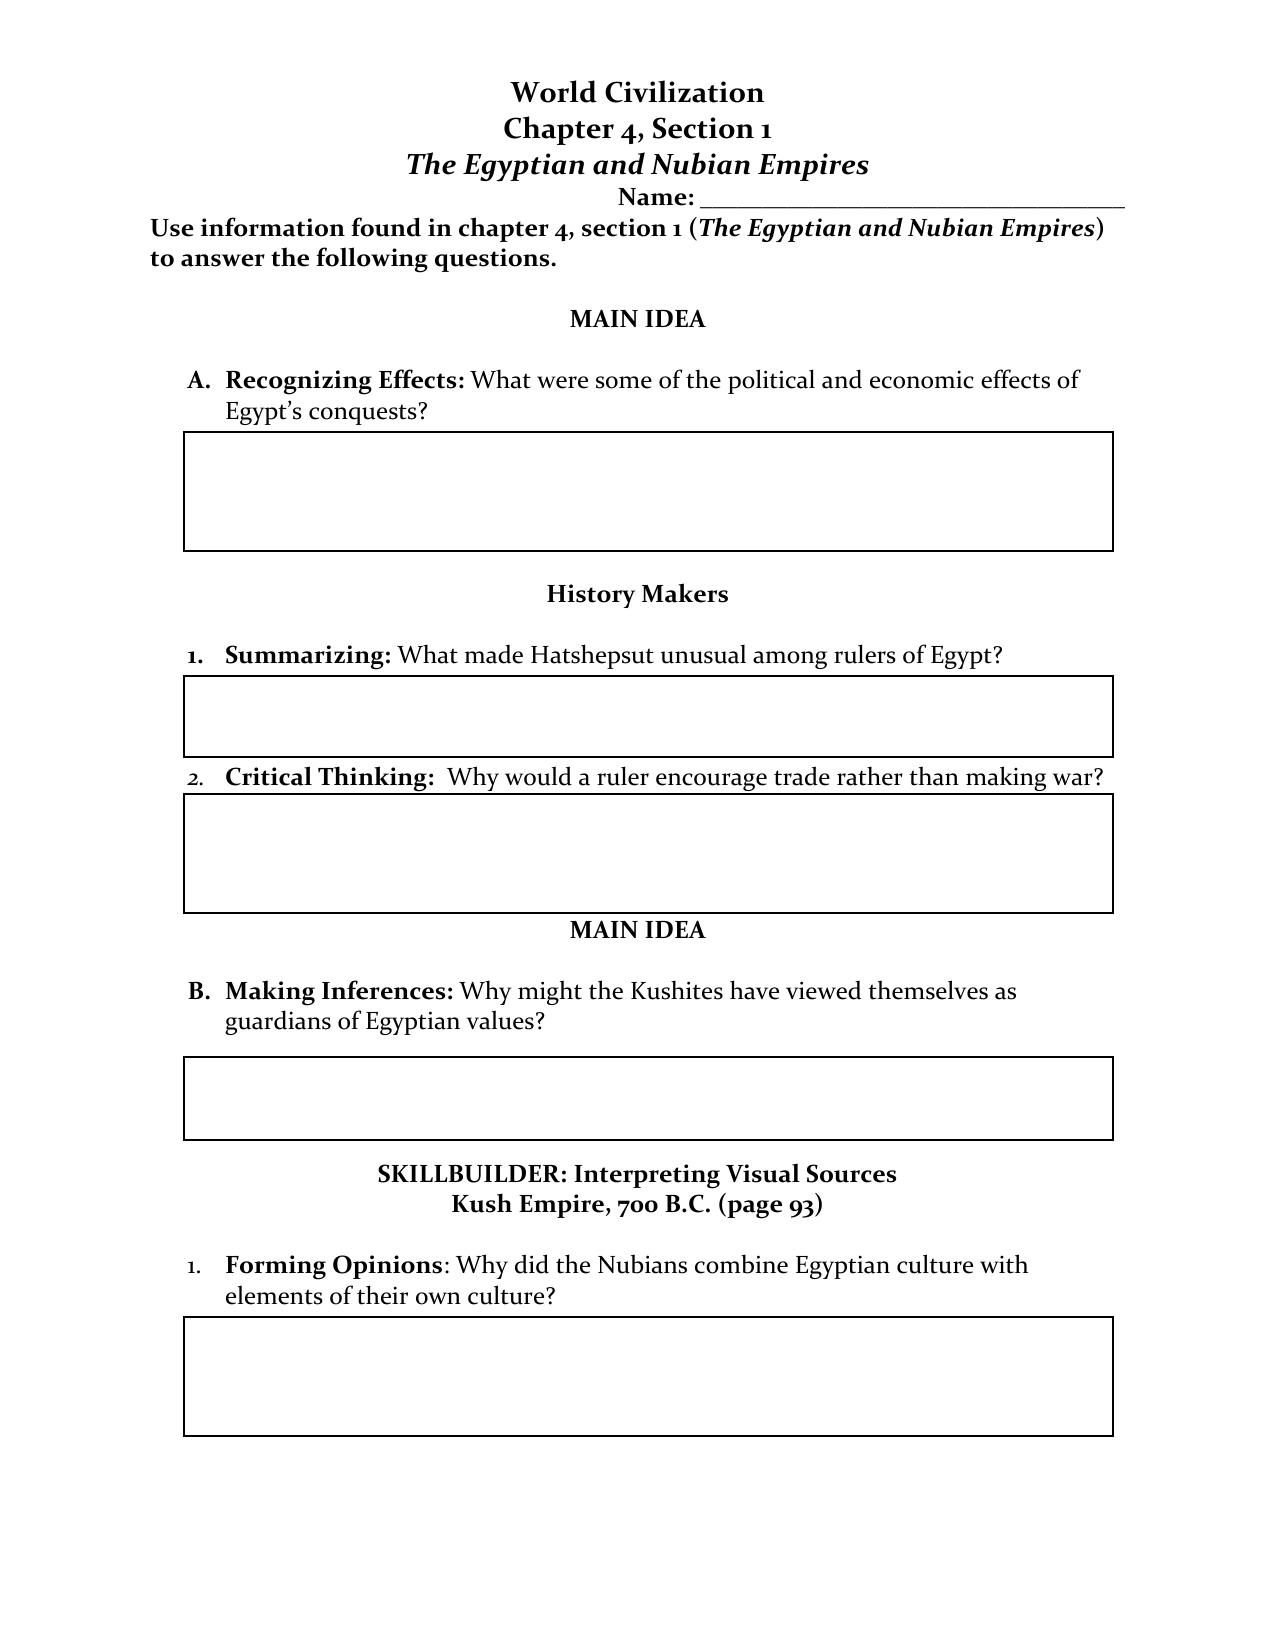 Section 1 Assignment